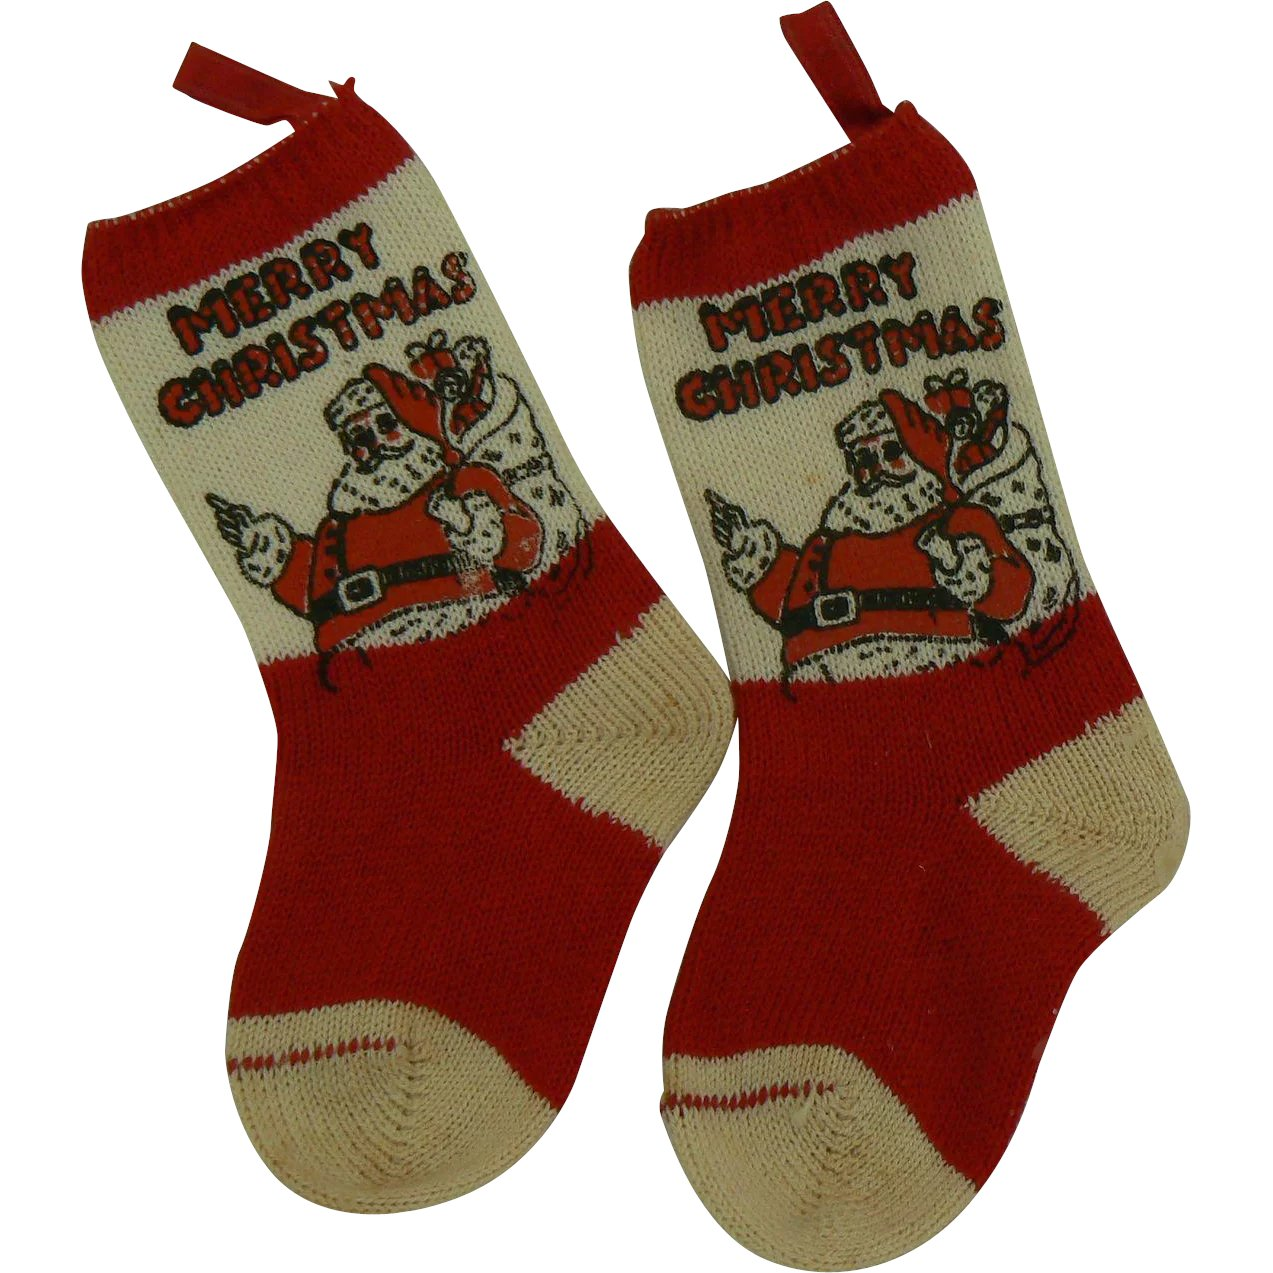 Vintage Christmas Stockings.Vintage Christmas Socks Or Stockings Great For A Doll Or Teddy Bear Old And Cute